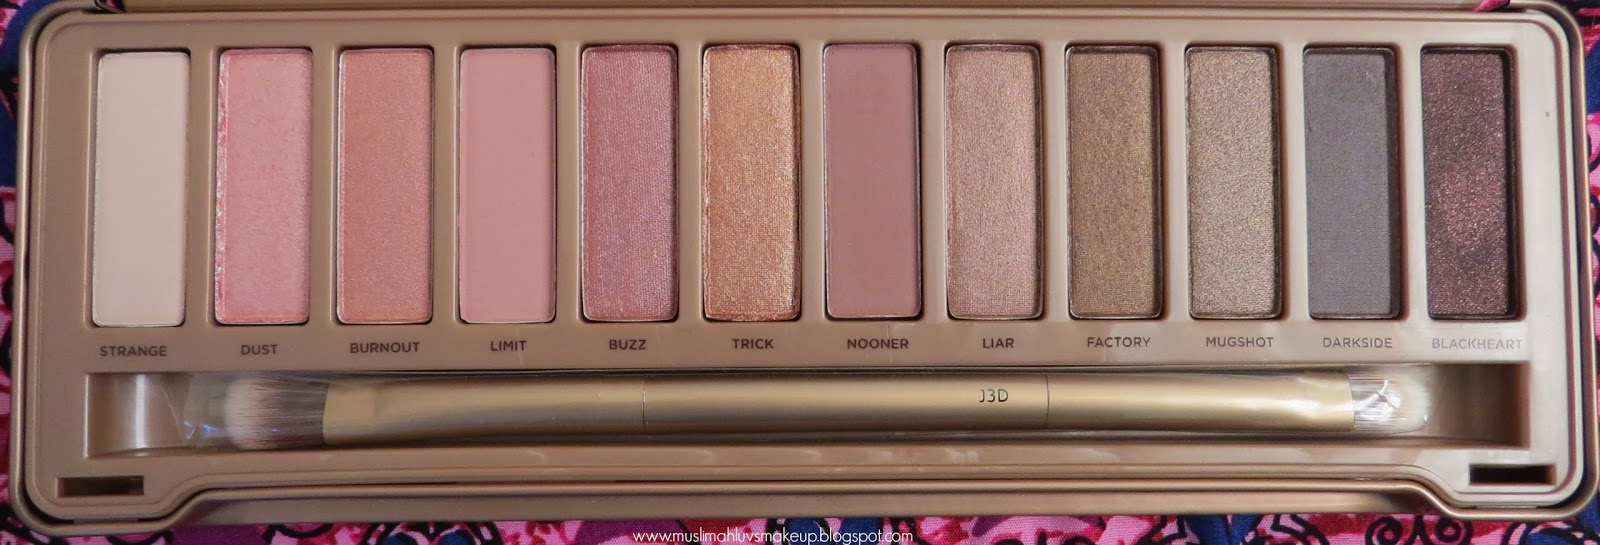 Muslimahluvsmakeup Urban Decays Naked 3 Eyeshadow -9954